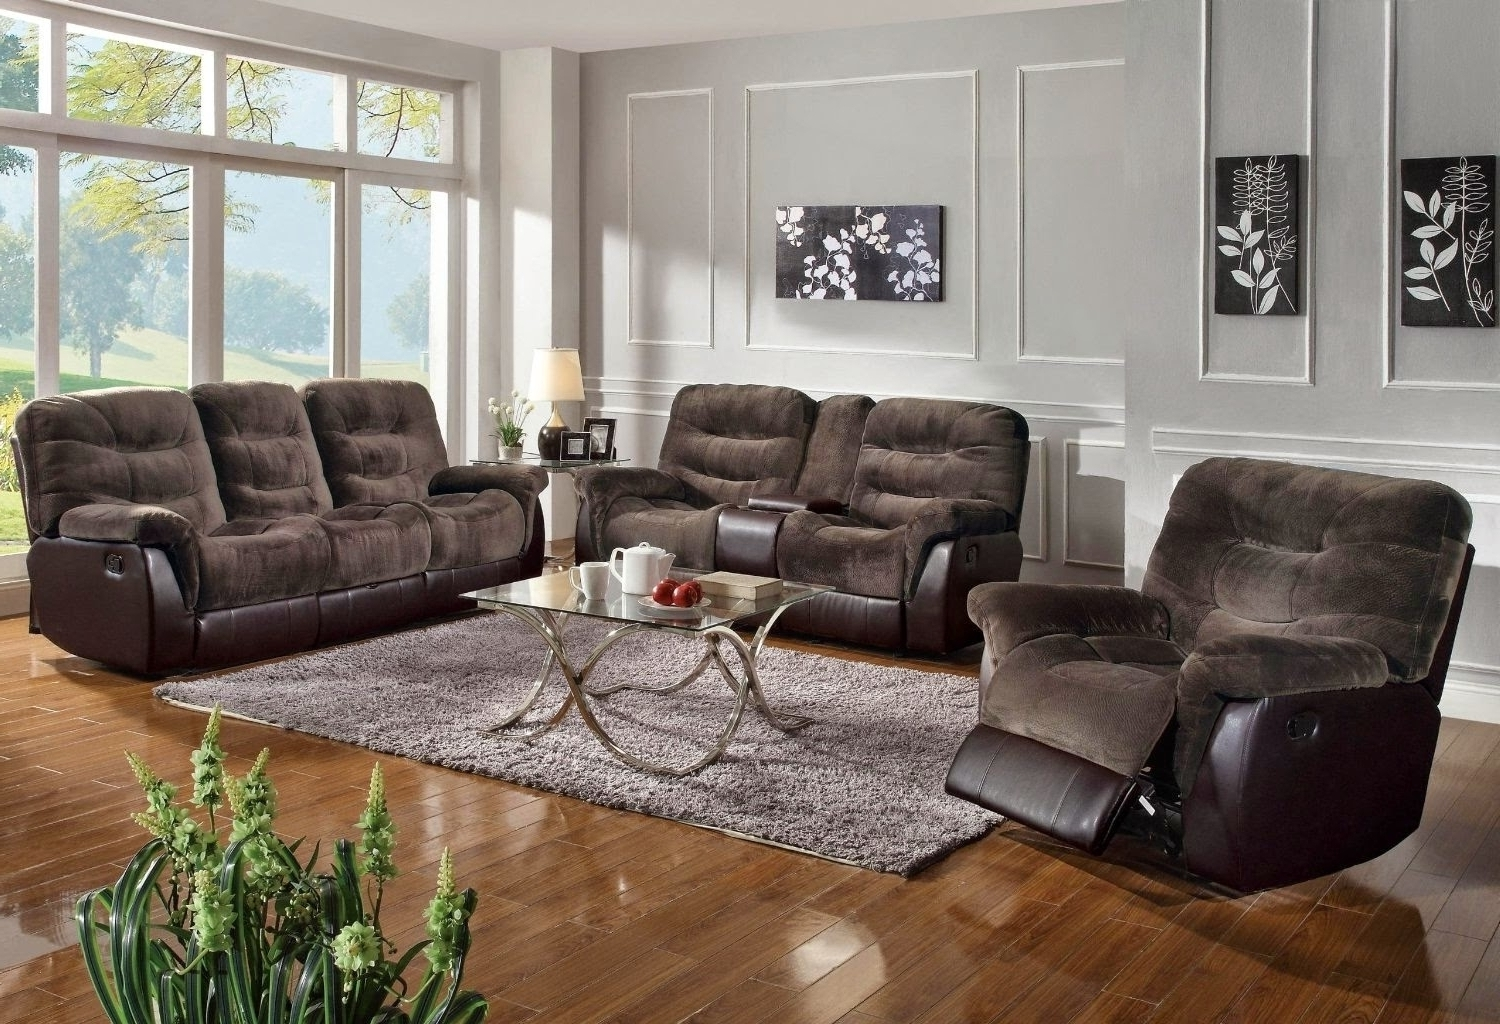 Most Recent Furniture Reclining Sectional Sofas For Small Spaces Reclining Within Small Sectional Sofas For Small Spaces (View 9 of 20)